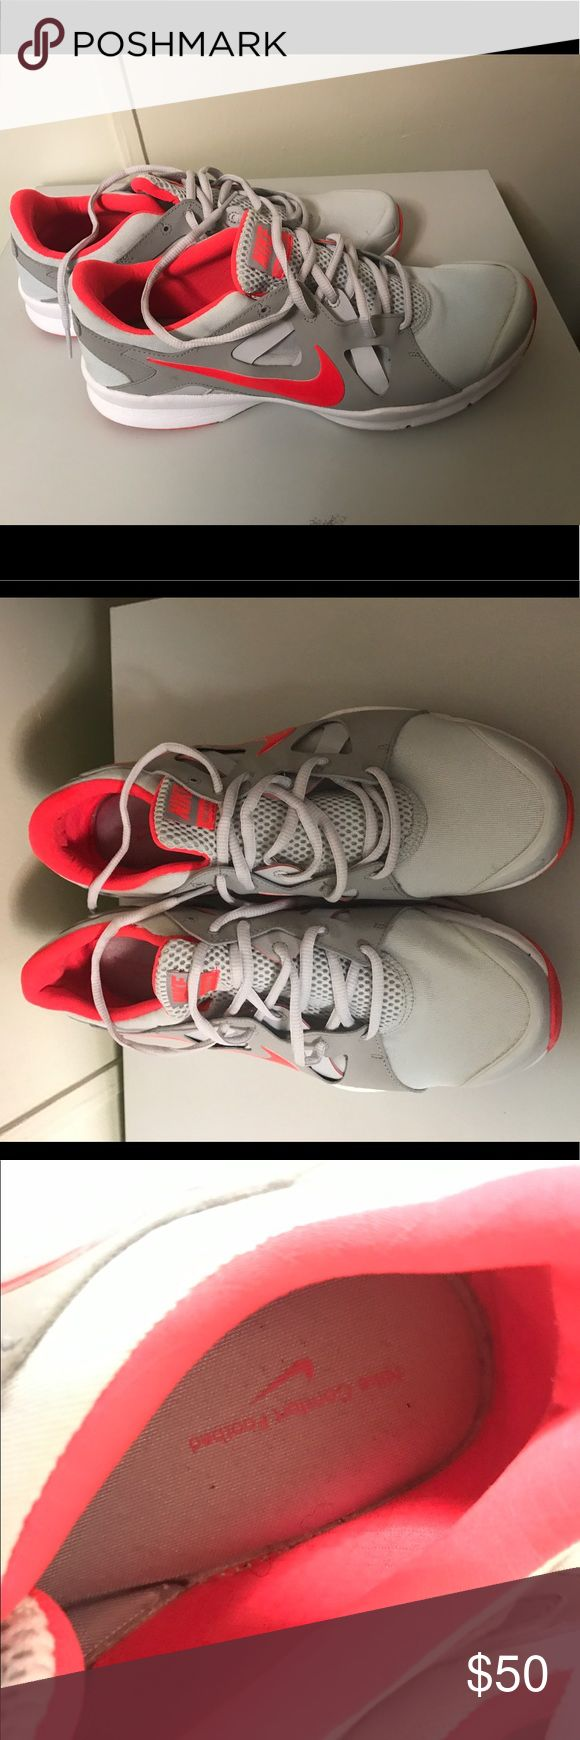 Nike running shoes size 11 women ! Nike shoes size 11 women. They were worn once! Nike Shoes Sneakers